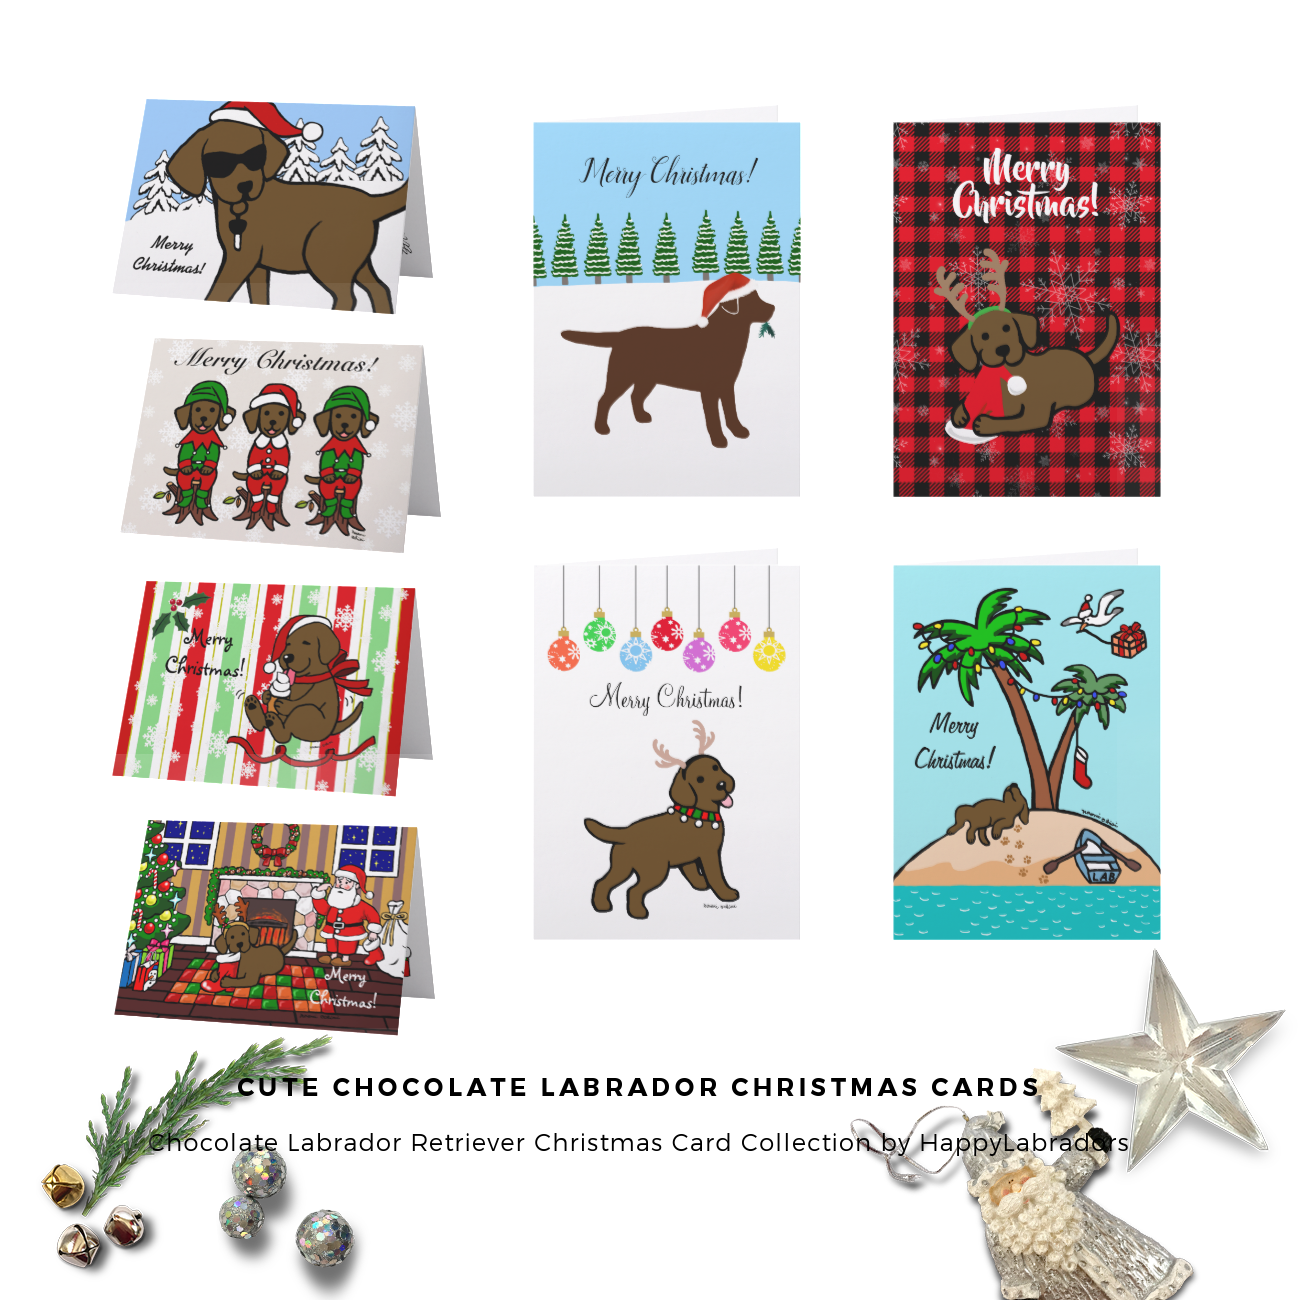 Cute Chocolate Labrador Christmas Cards by HappyLabradors